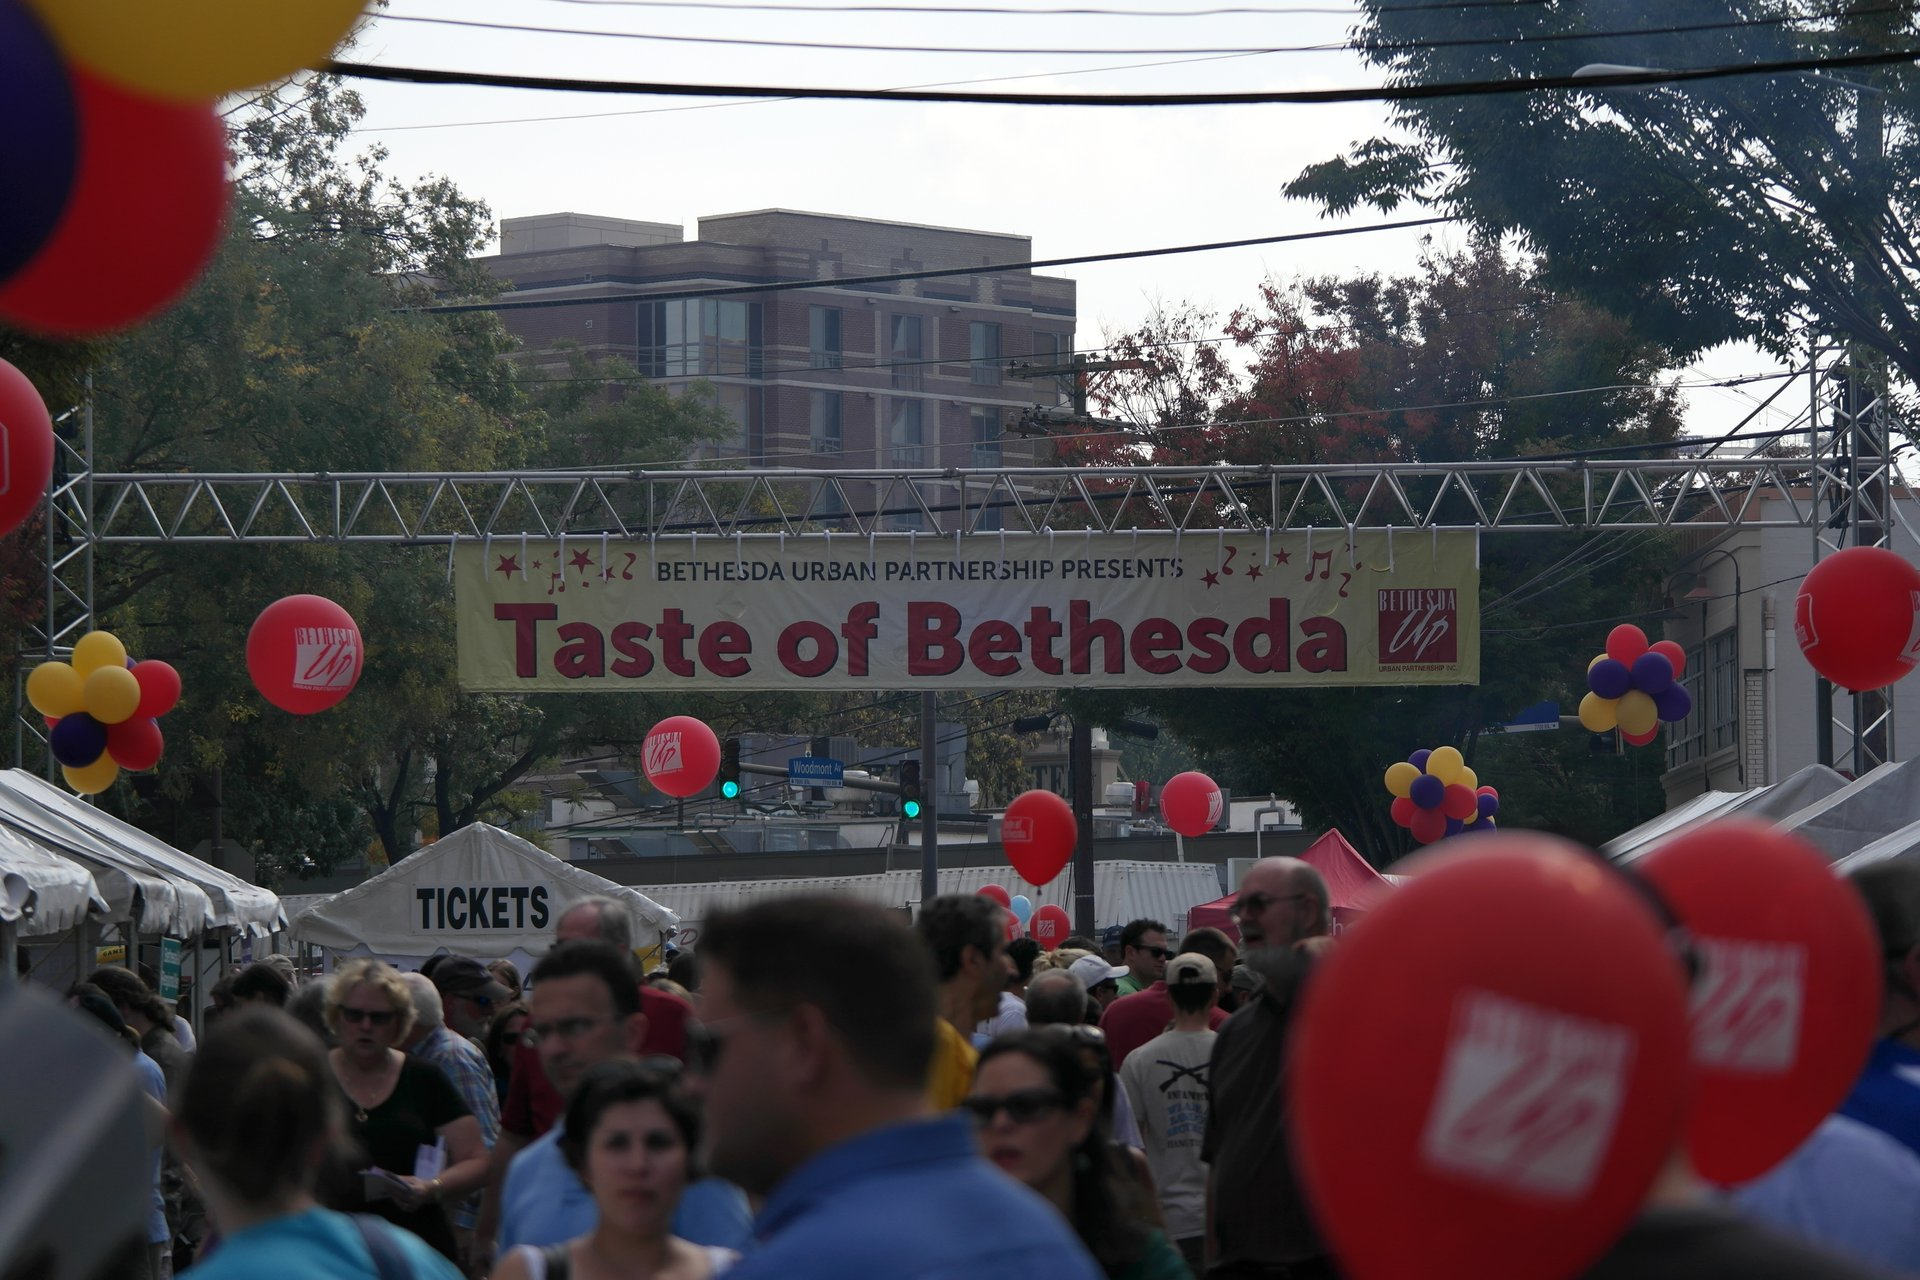 Taste of Bethesda in Maryland - Best Season 2020